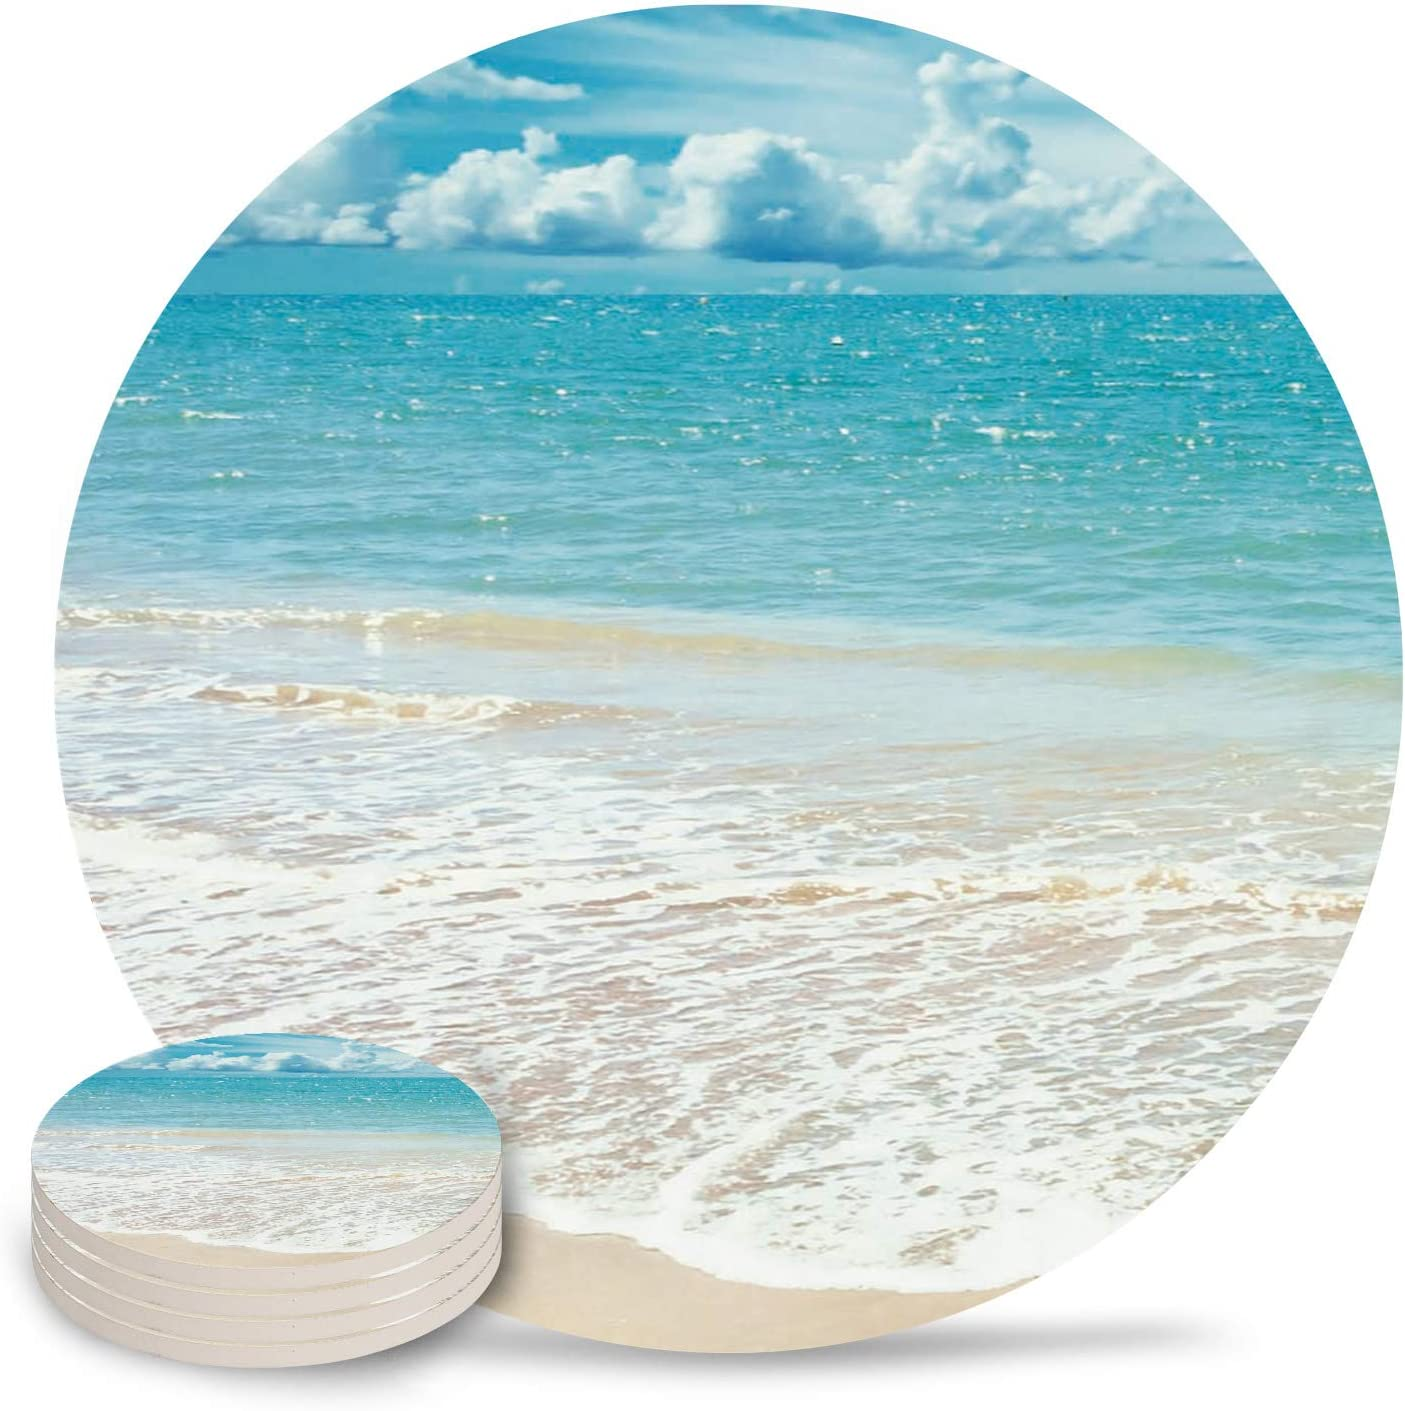 Set of 4 Coasters for Drinks, Absorbing Stone Beach with Vivid Sky Ocean Scenery Ceramic Round Coaster with Cork Base No Holder, for Housewarming Coffee Kitchen Room Bar Decor (4 Inch)